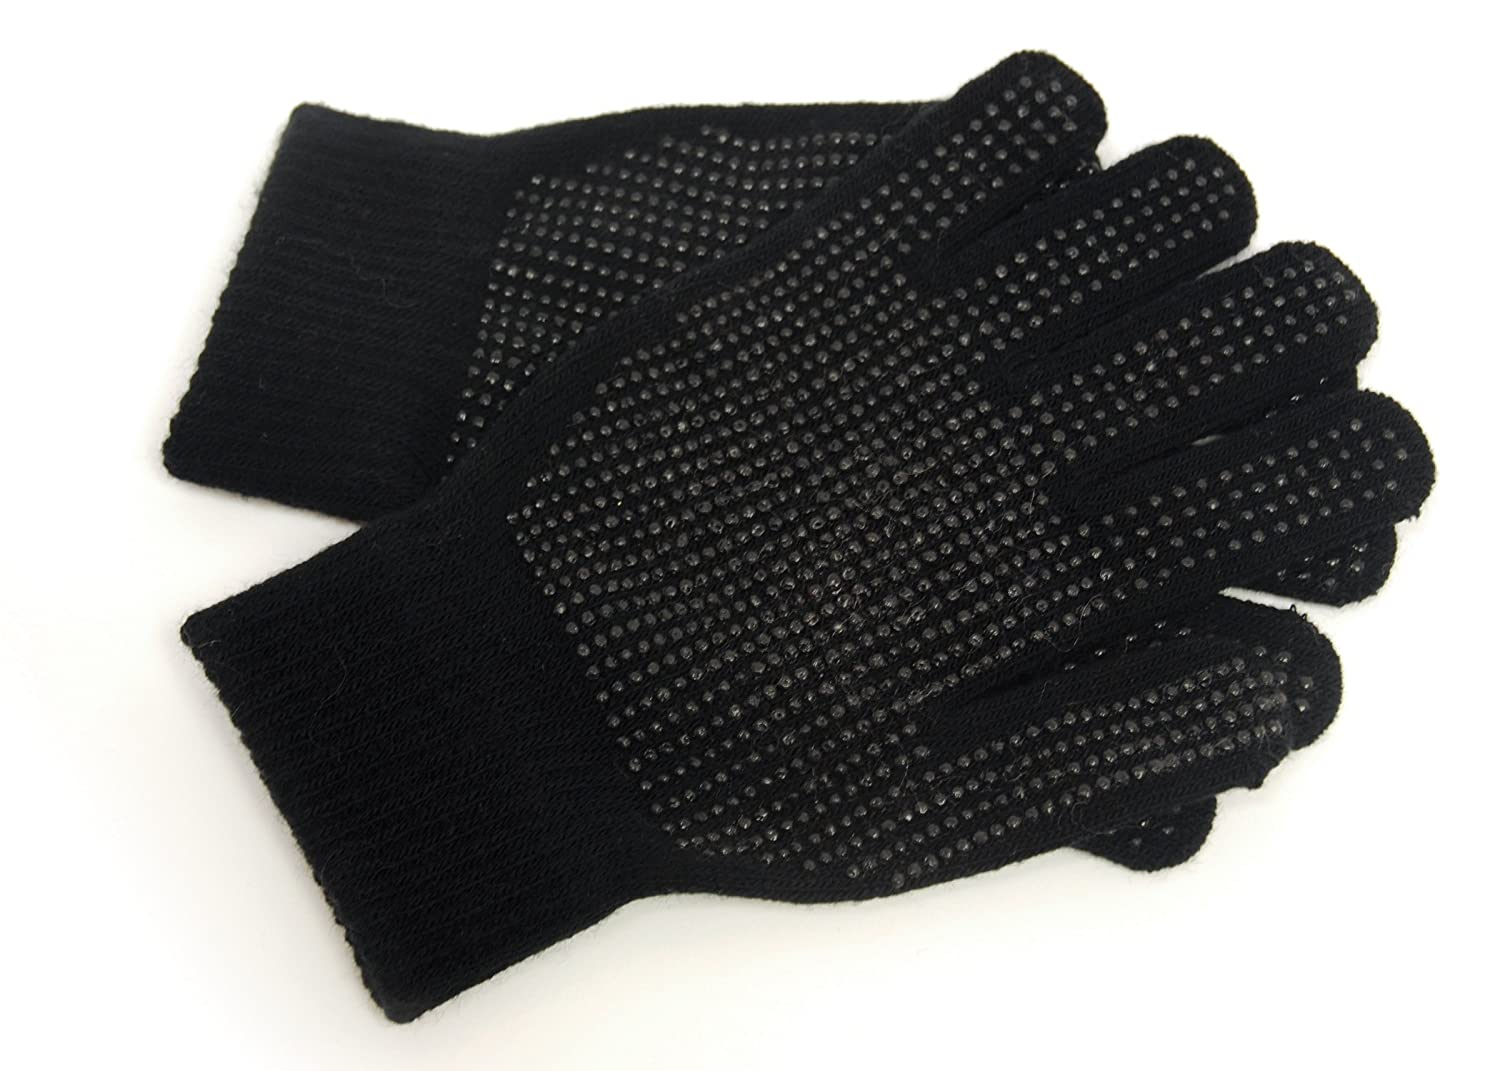 OCTAVE/® Adults Unisex Warm Stretchy Magic Gripper Gloves Black With Dotted Grips